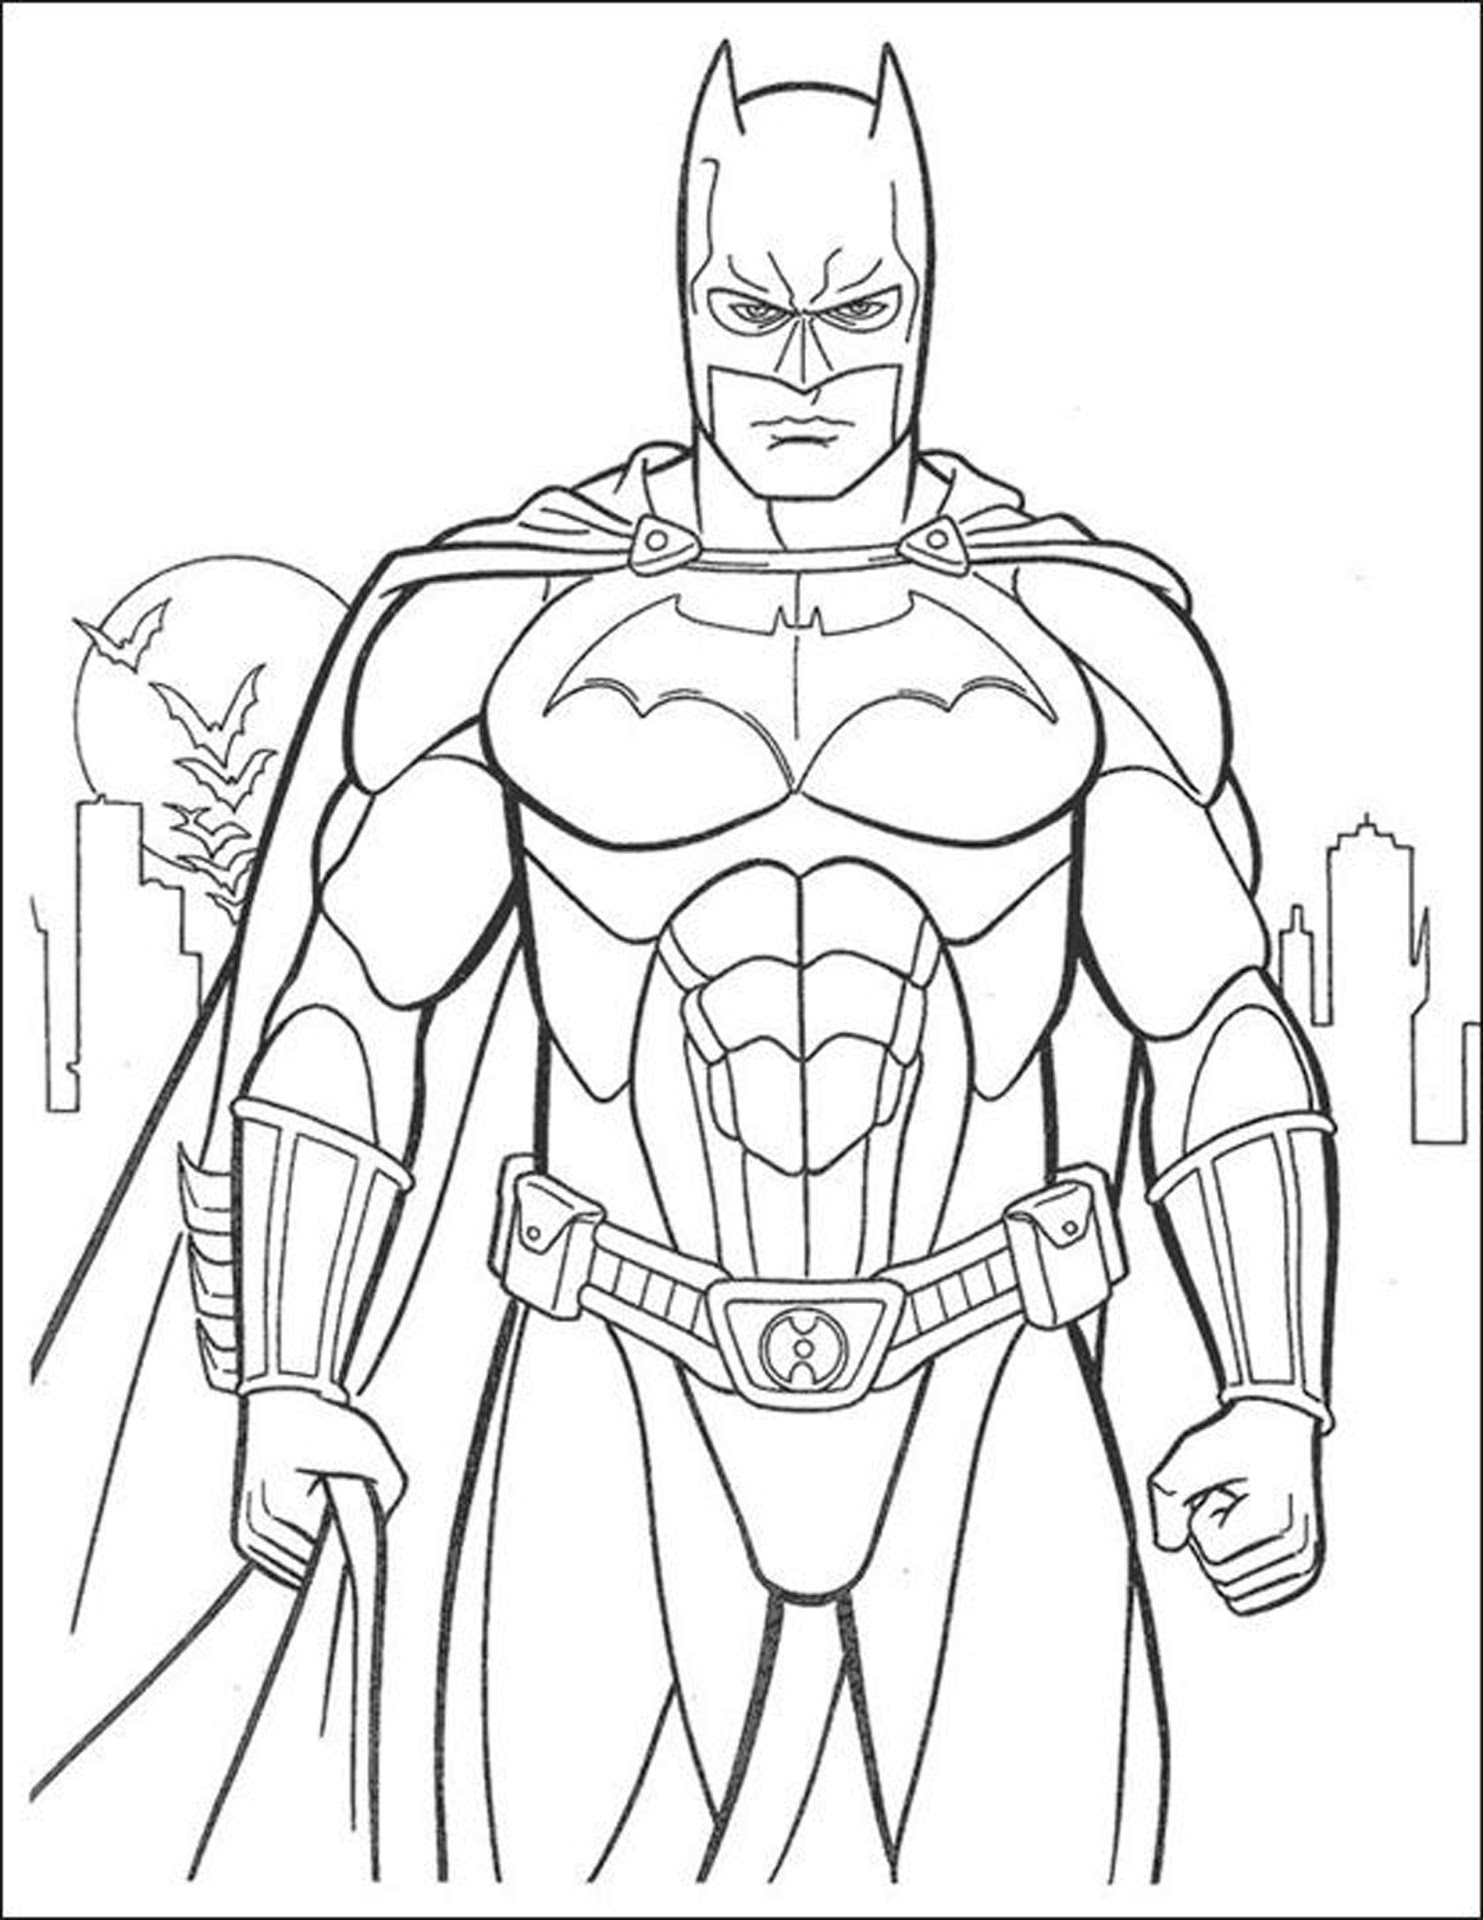 Best HD Batman Coloring Pages Image | Big Collection Free ...